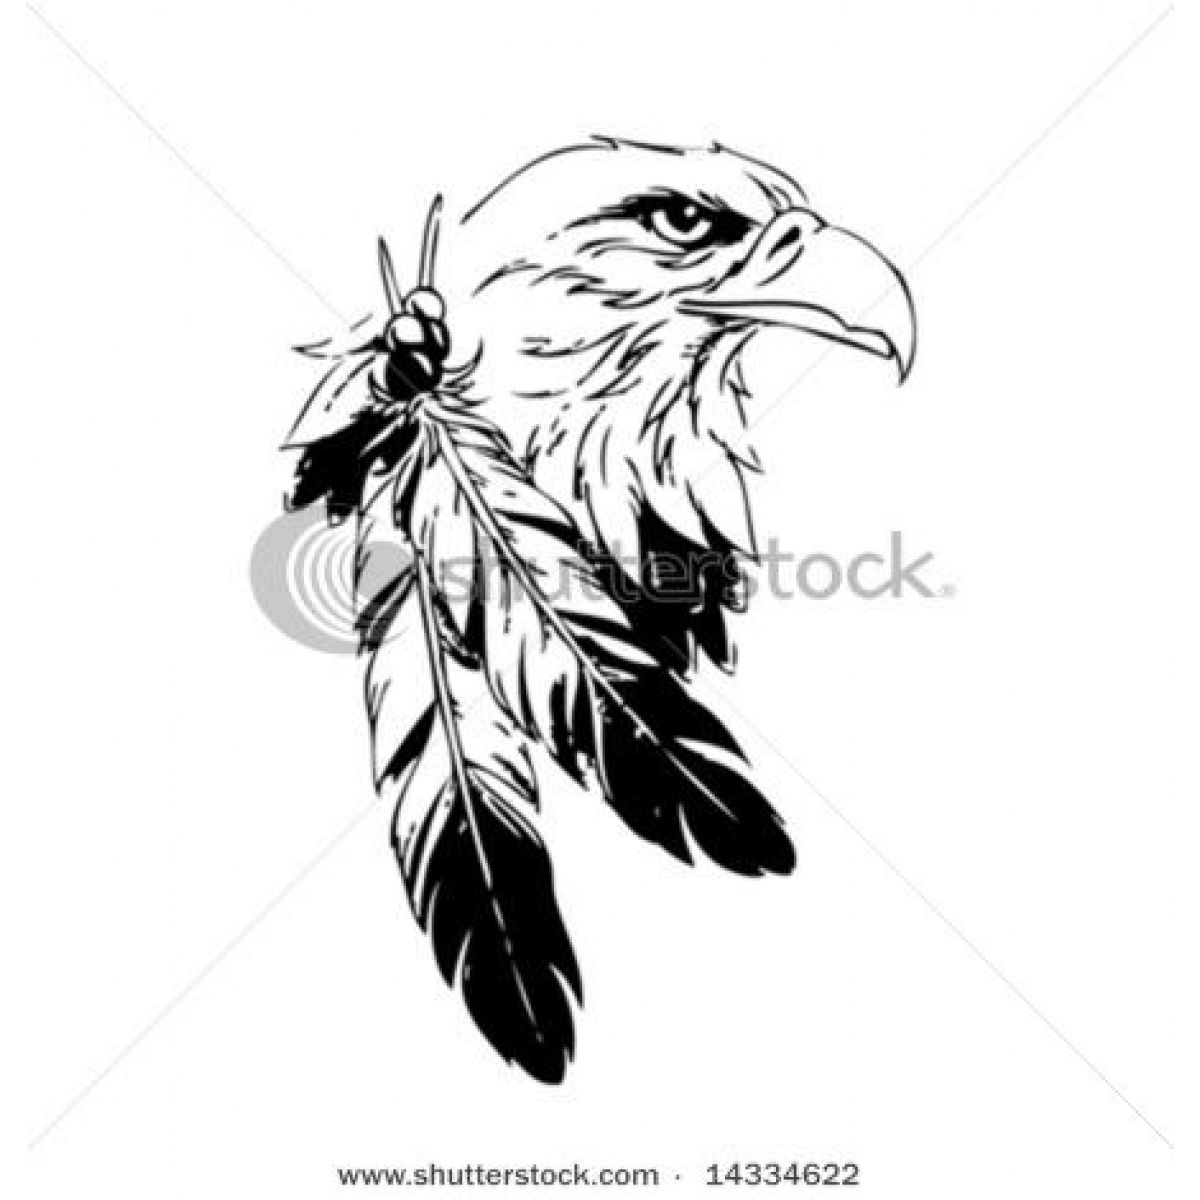 Eagle clipart name. Sketches please your picture